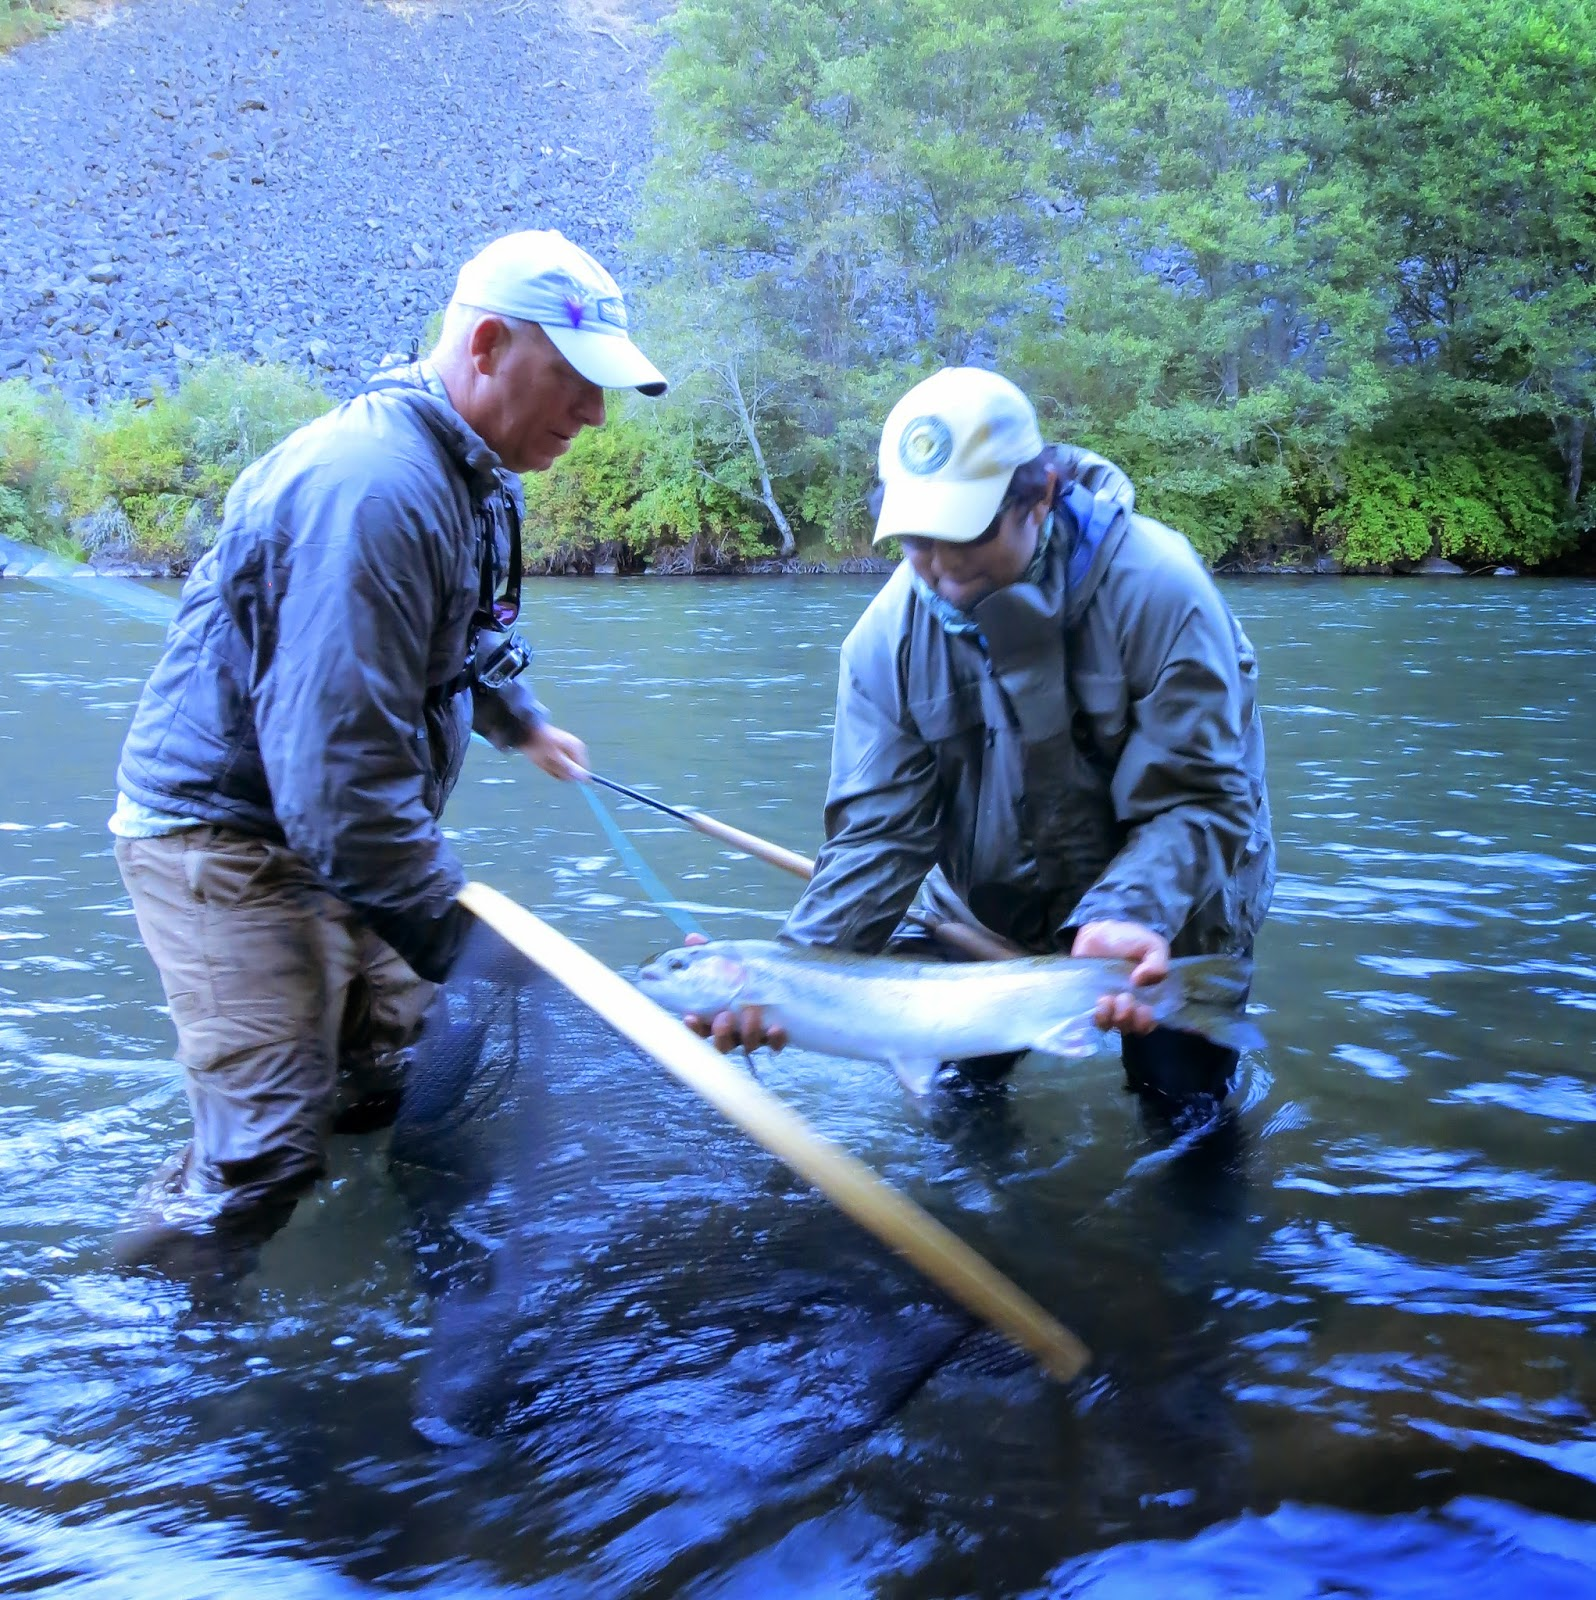 The evening hatch reports klickitat river report 9 4 14 for Klickitat river fishing report